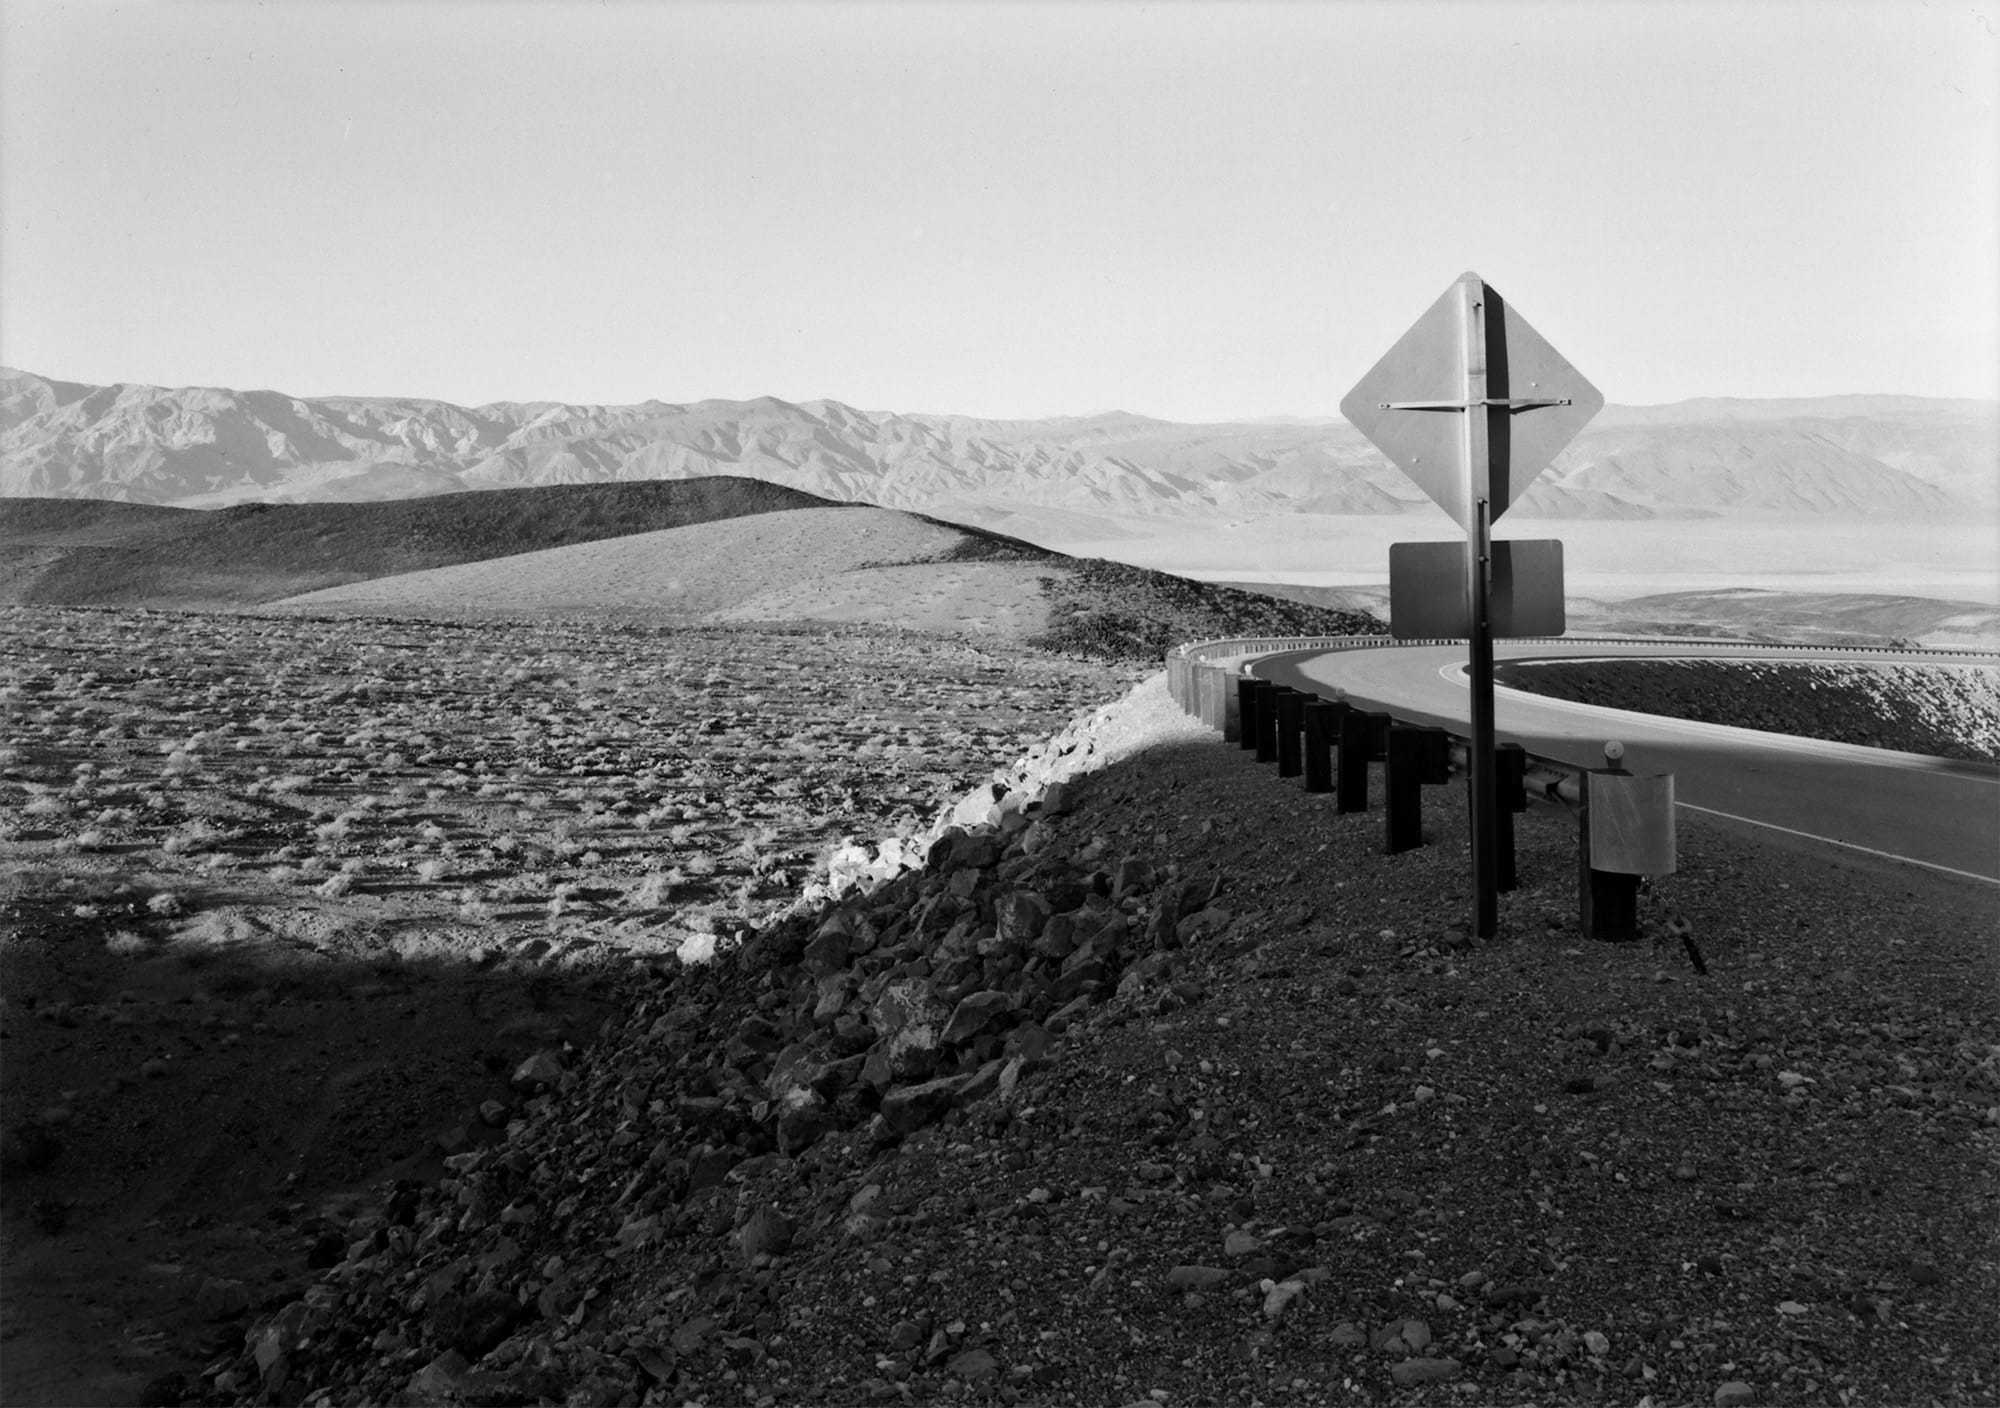 Death Valley, California, USA, 1975